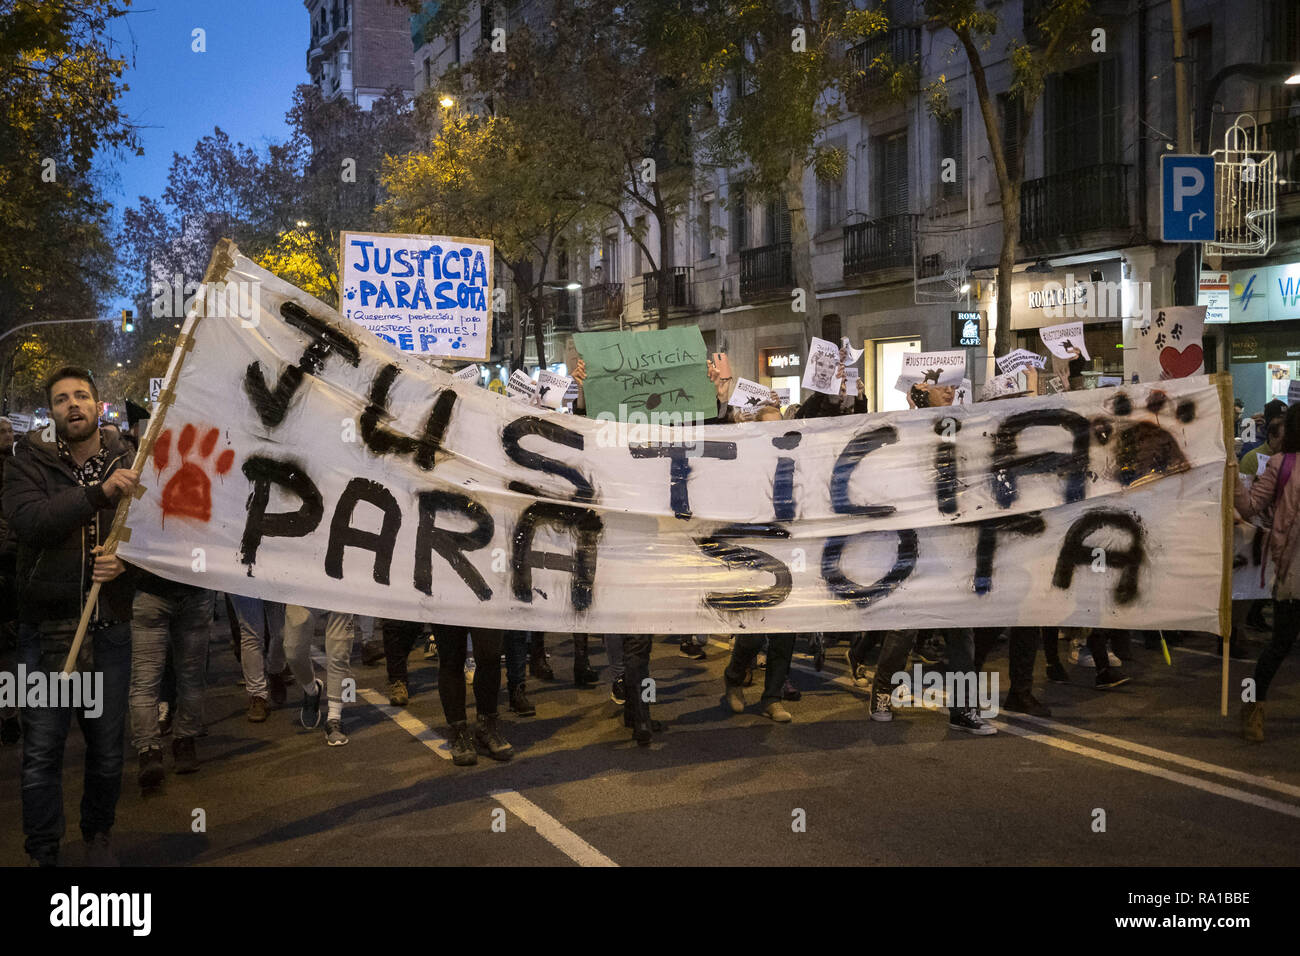 Barcelona, Catalonia, Spain  29th Dec, 2018  The banner with